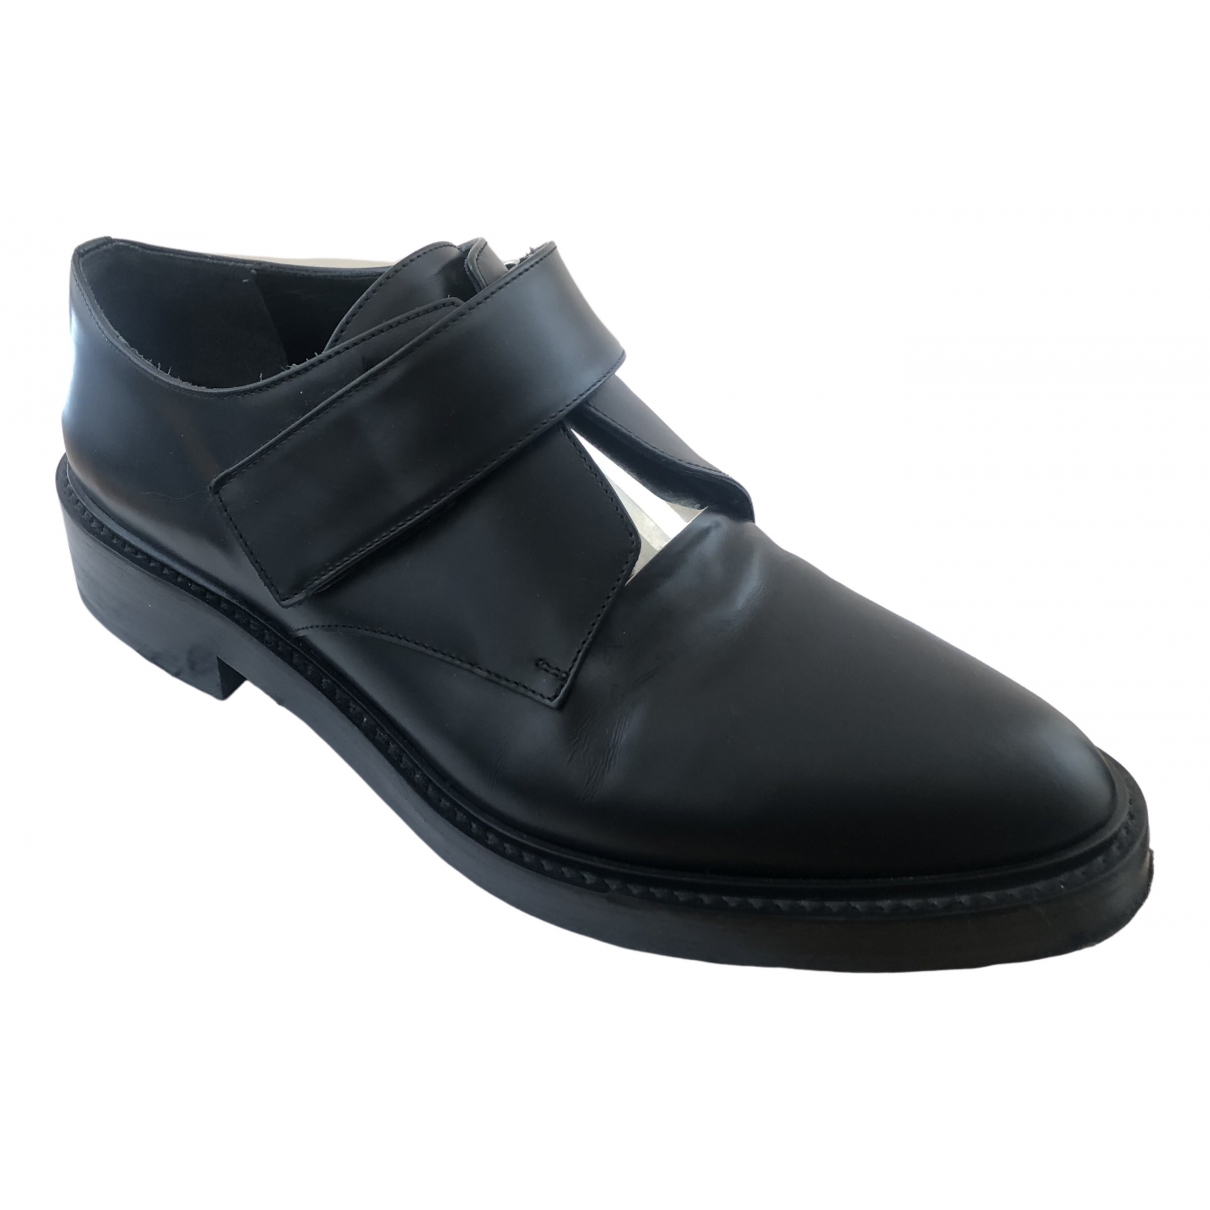 Vince \N Black Leather Flats for Women 5 UK